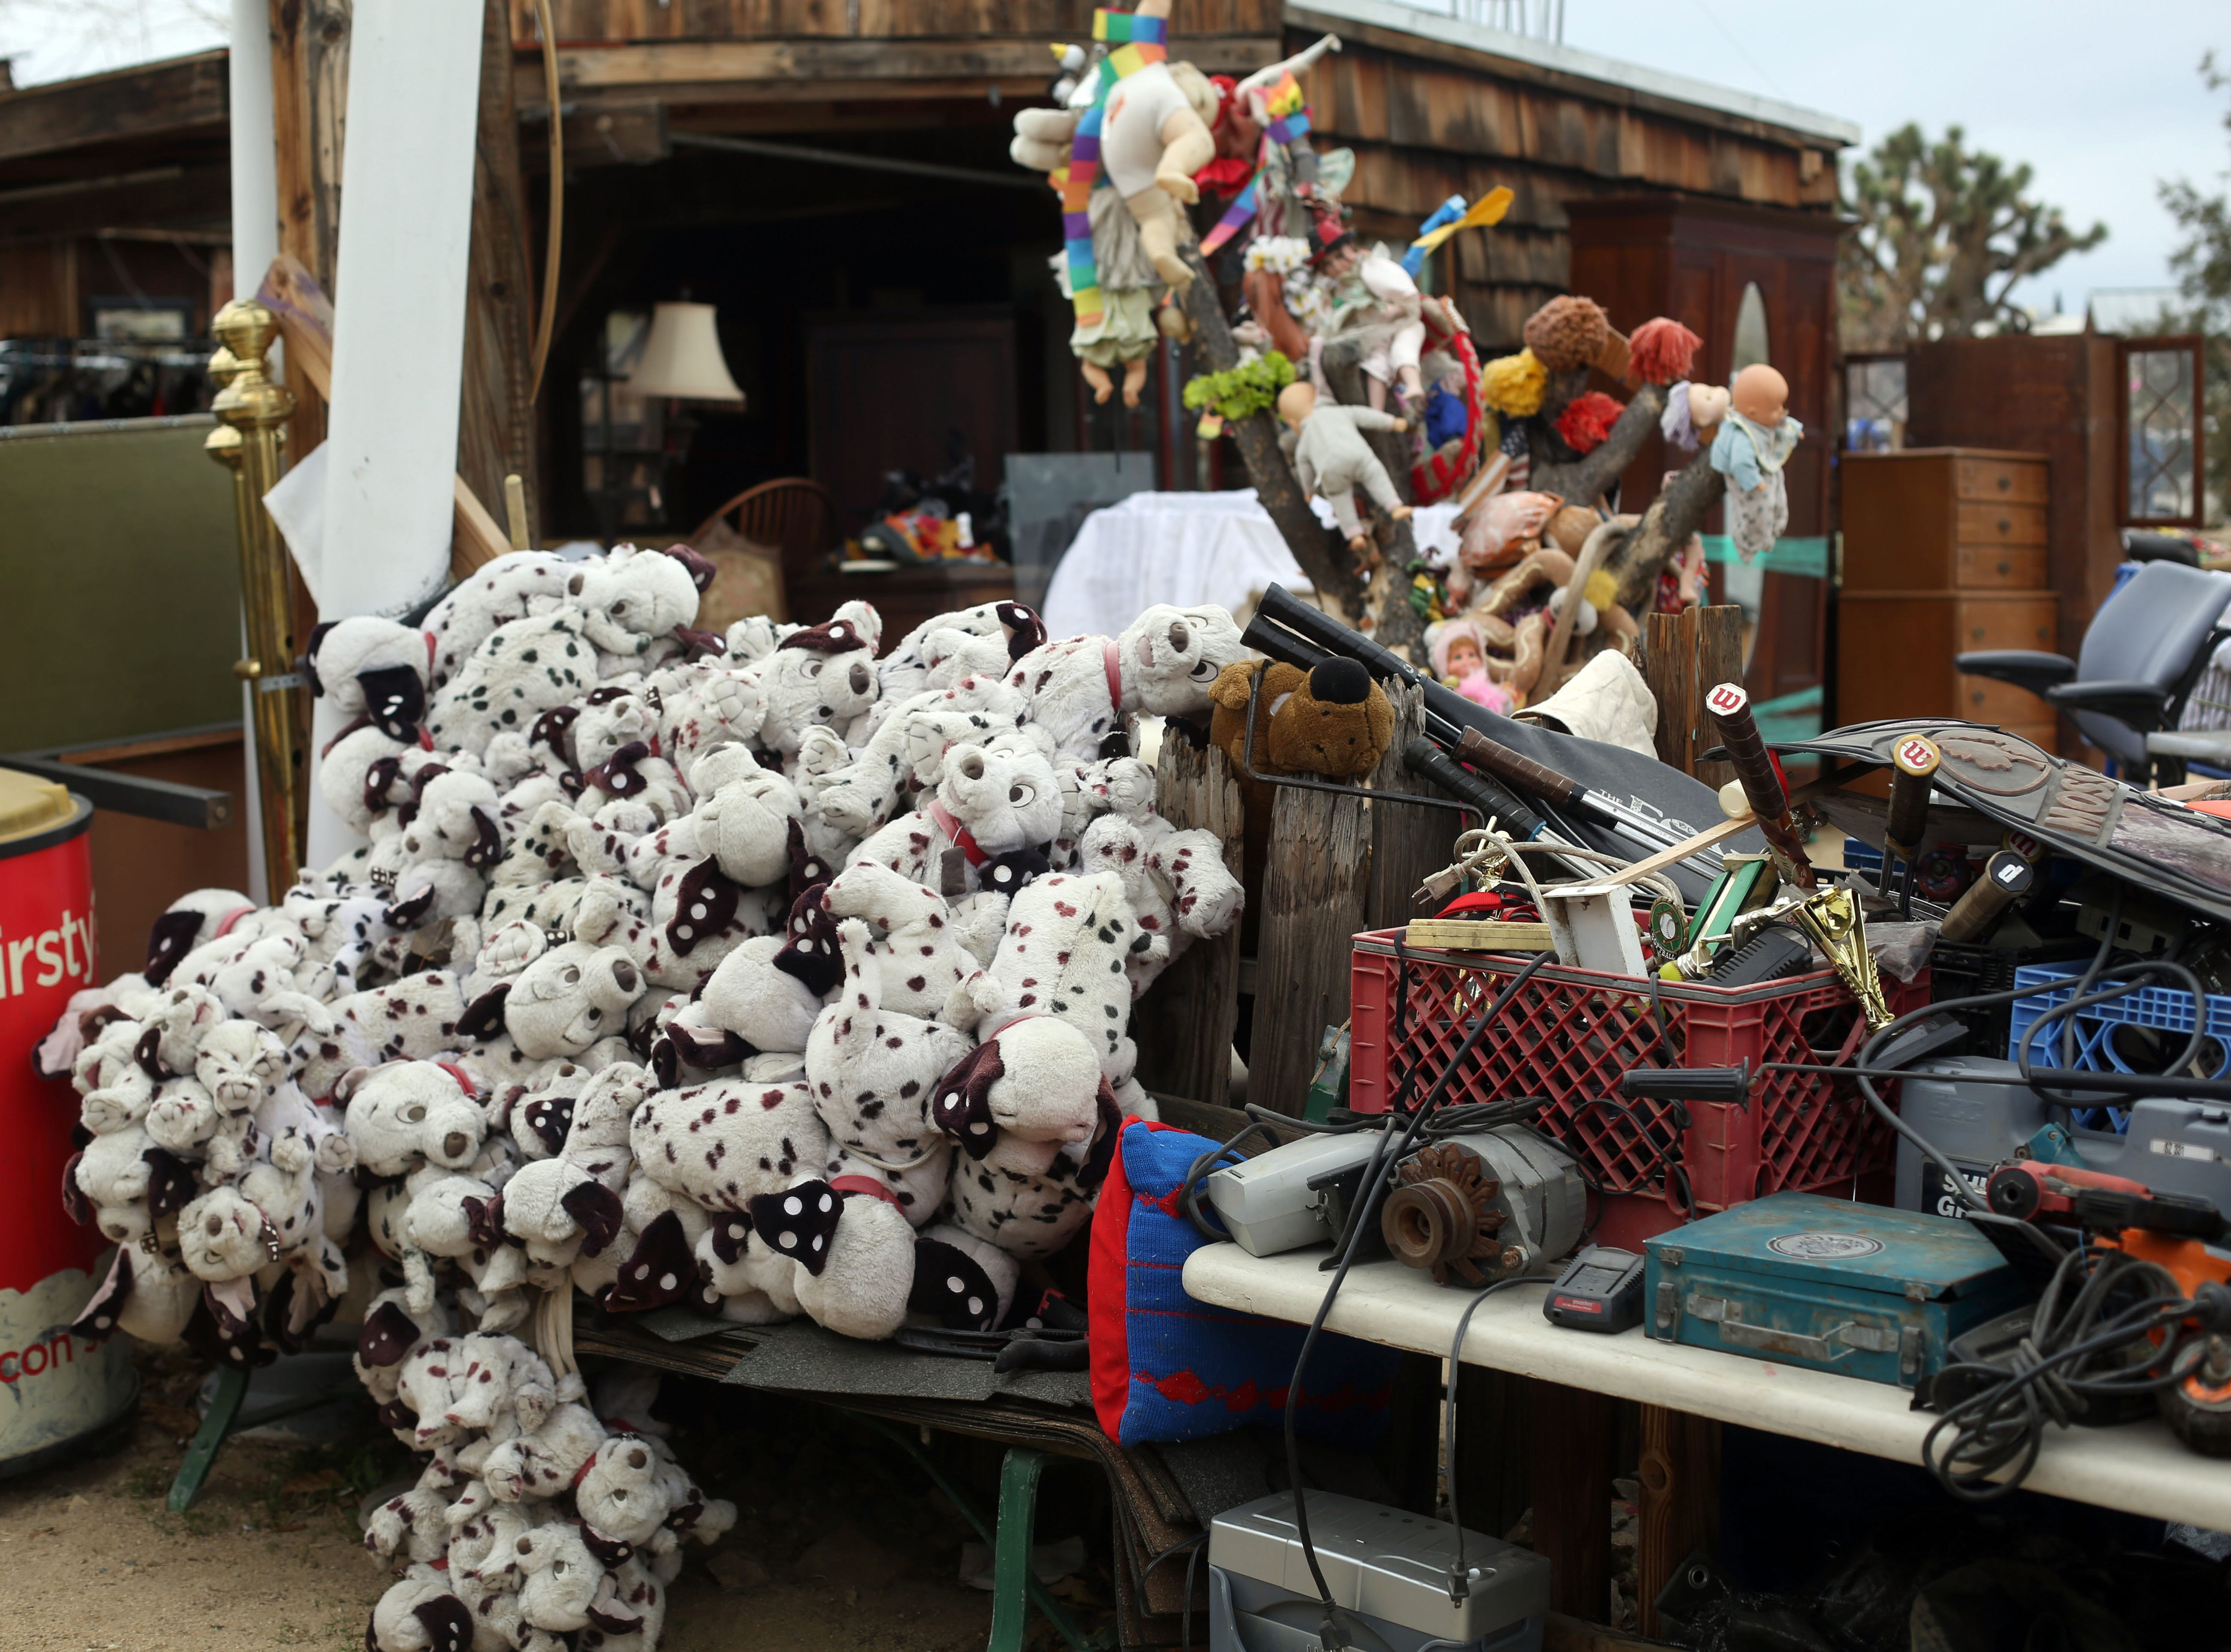 A bundle of dalmatian toys at the Sky Village Swap Meet in Yucca Valley on Saturday, January 5, 2019.